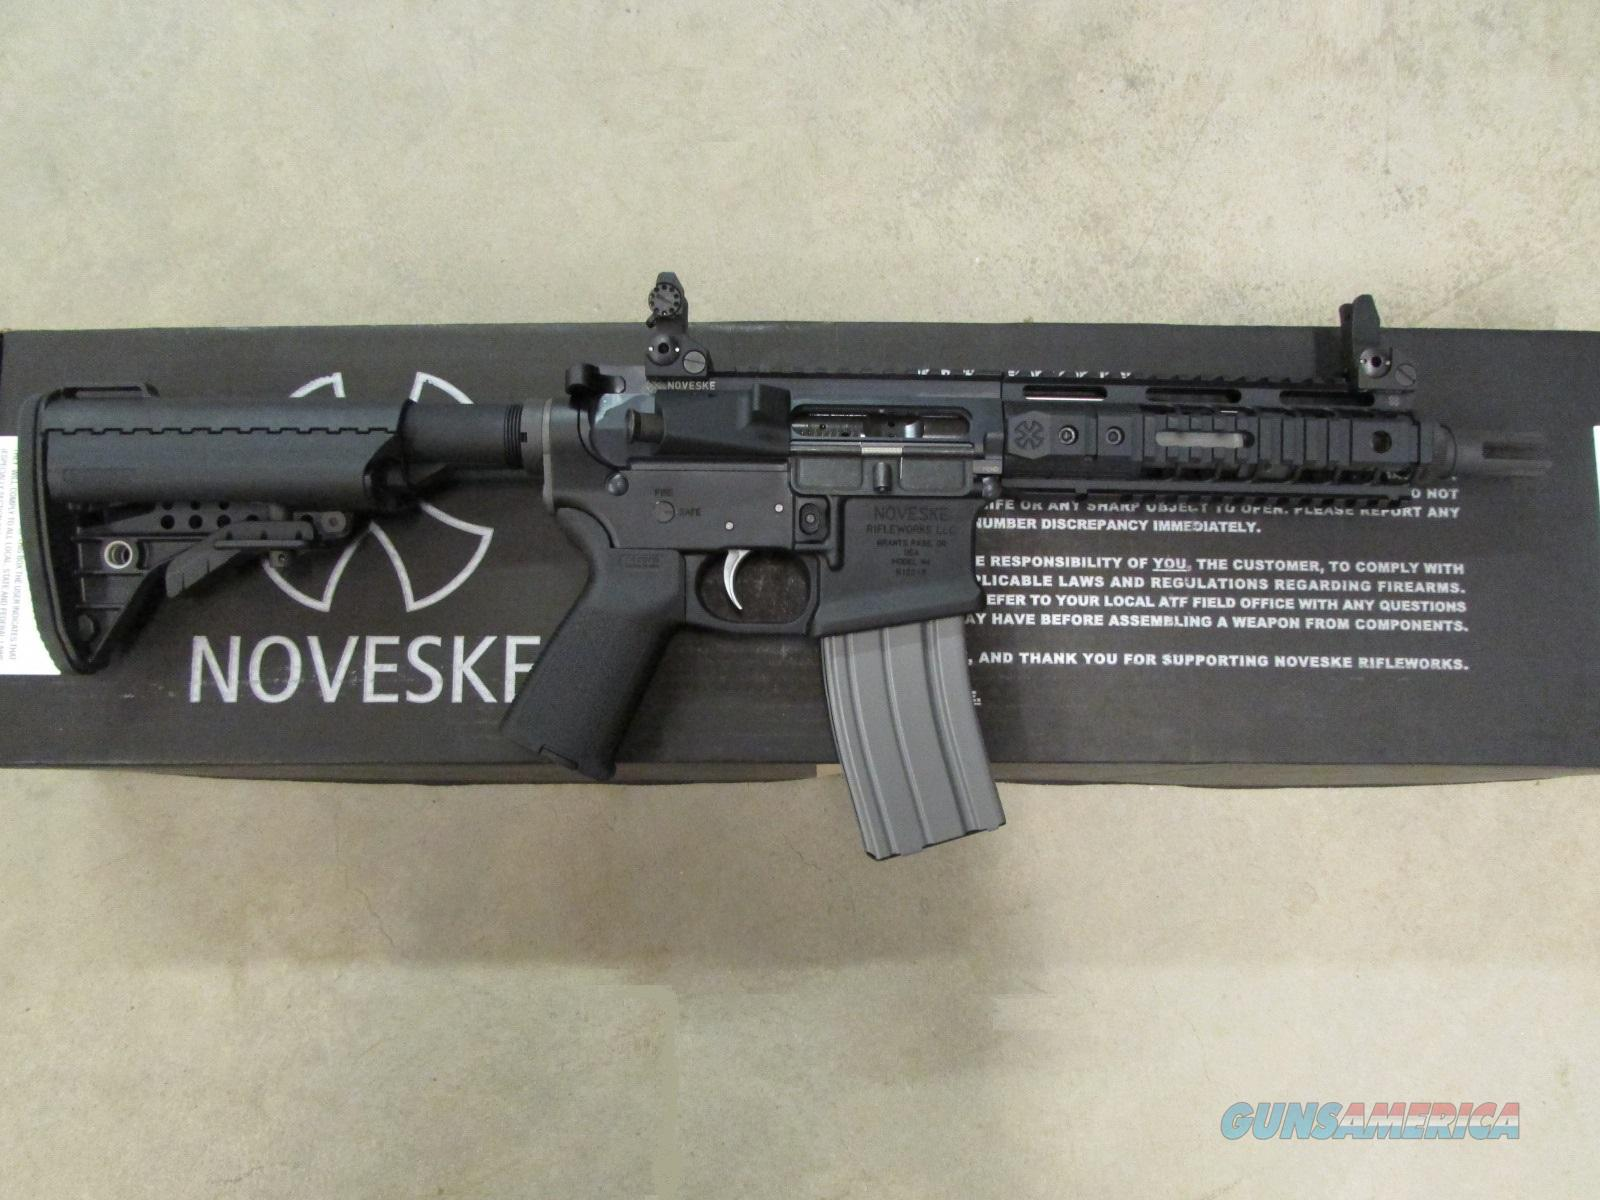 "Noveske N4 AR-15 8.2"" SBR 300 AAC Blackout  Guns > Rifles > AR-15 Rifles - Small Manufacturers > Complete Rifle"